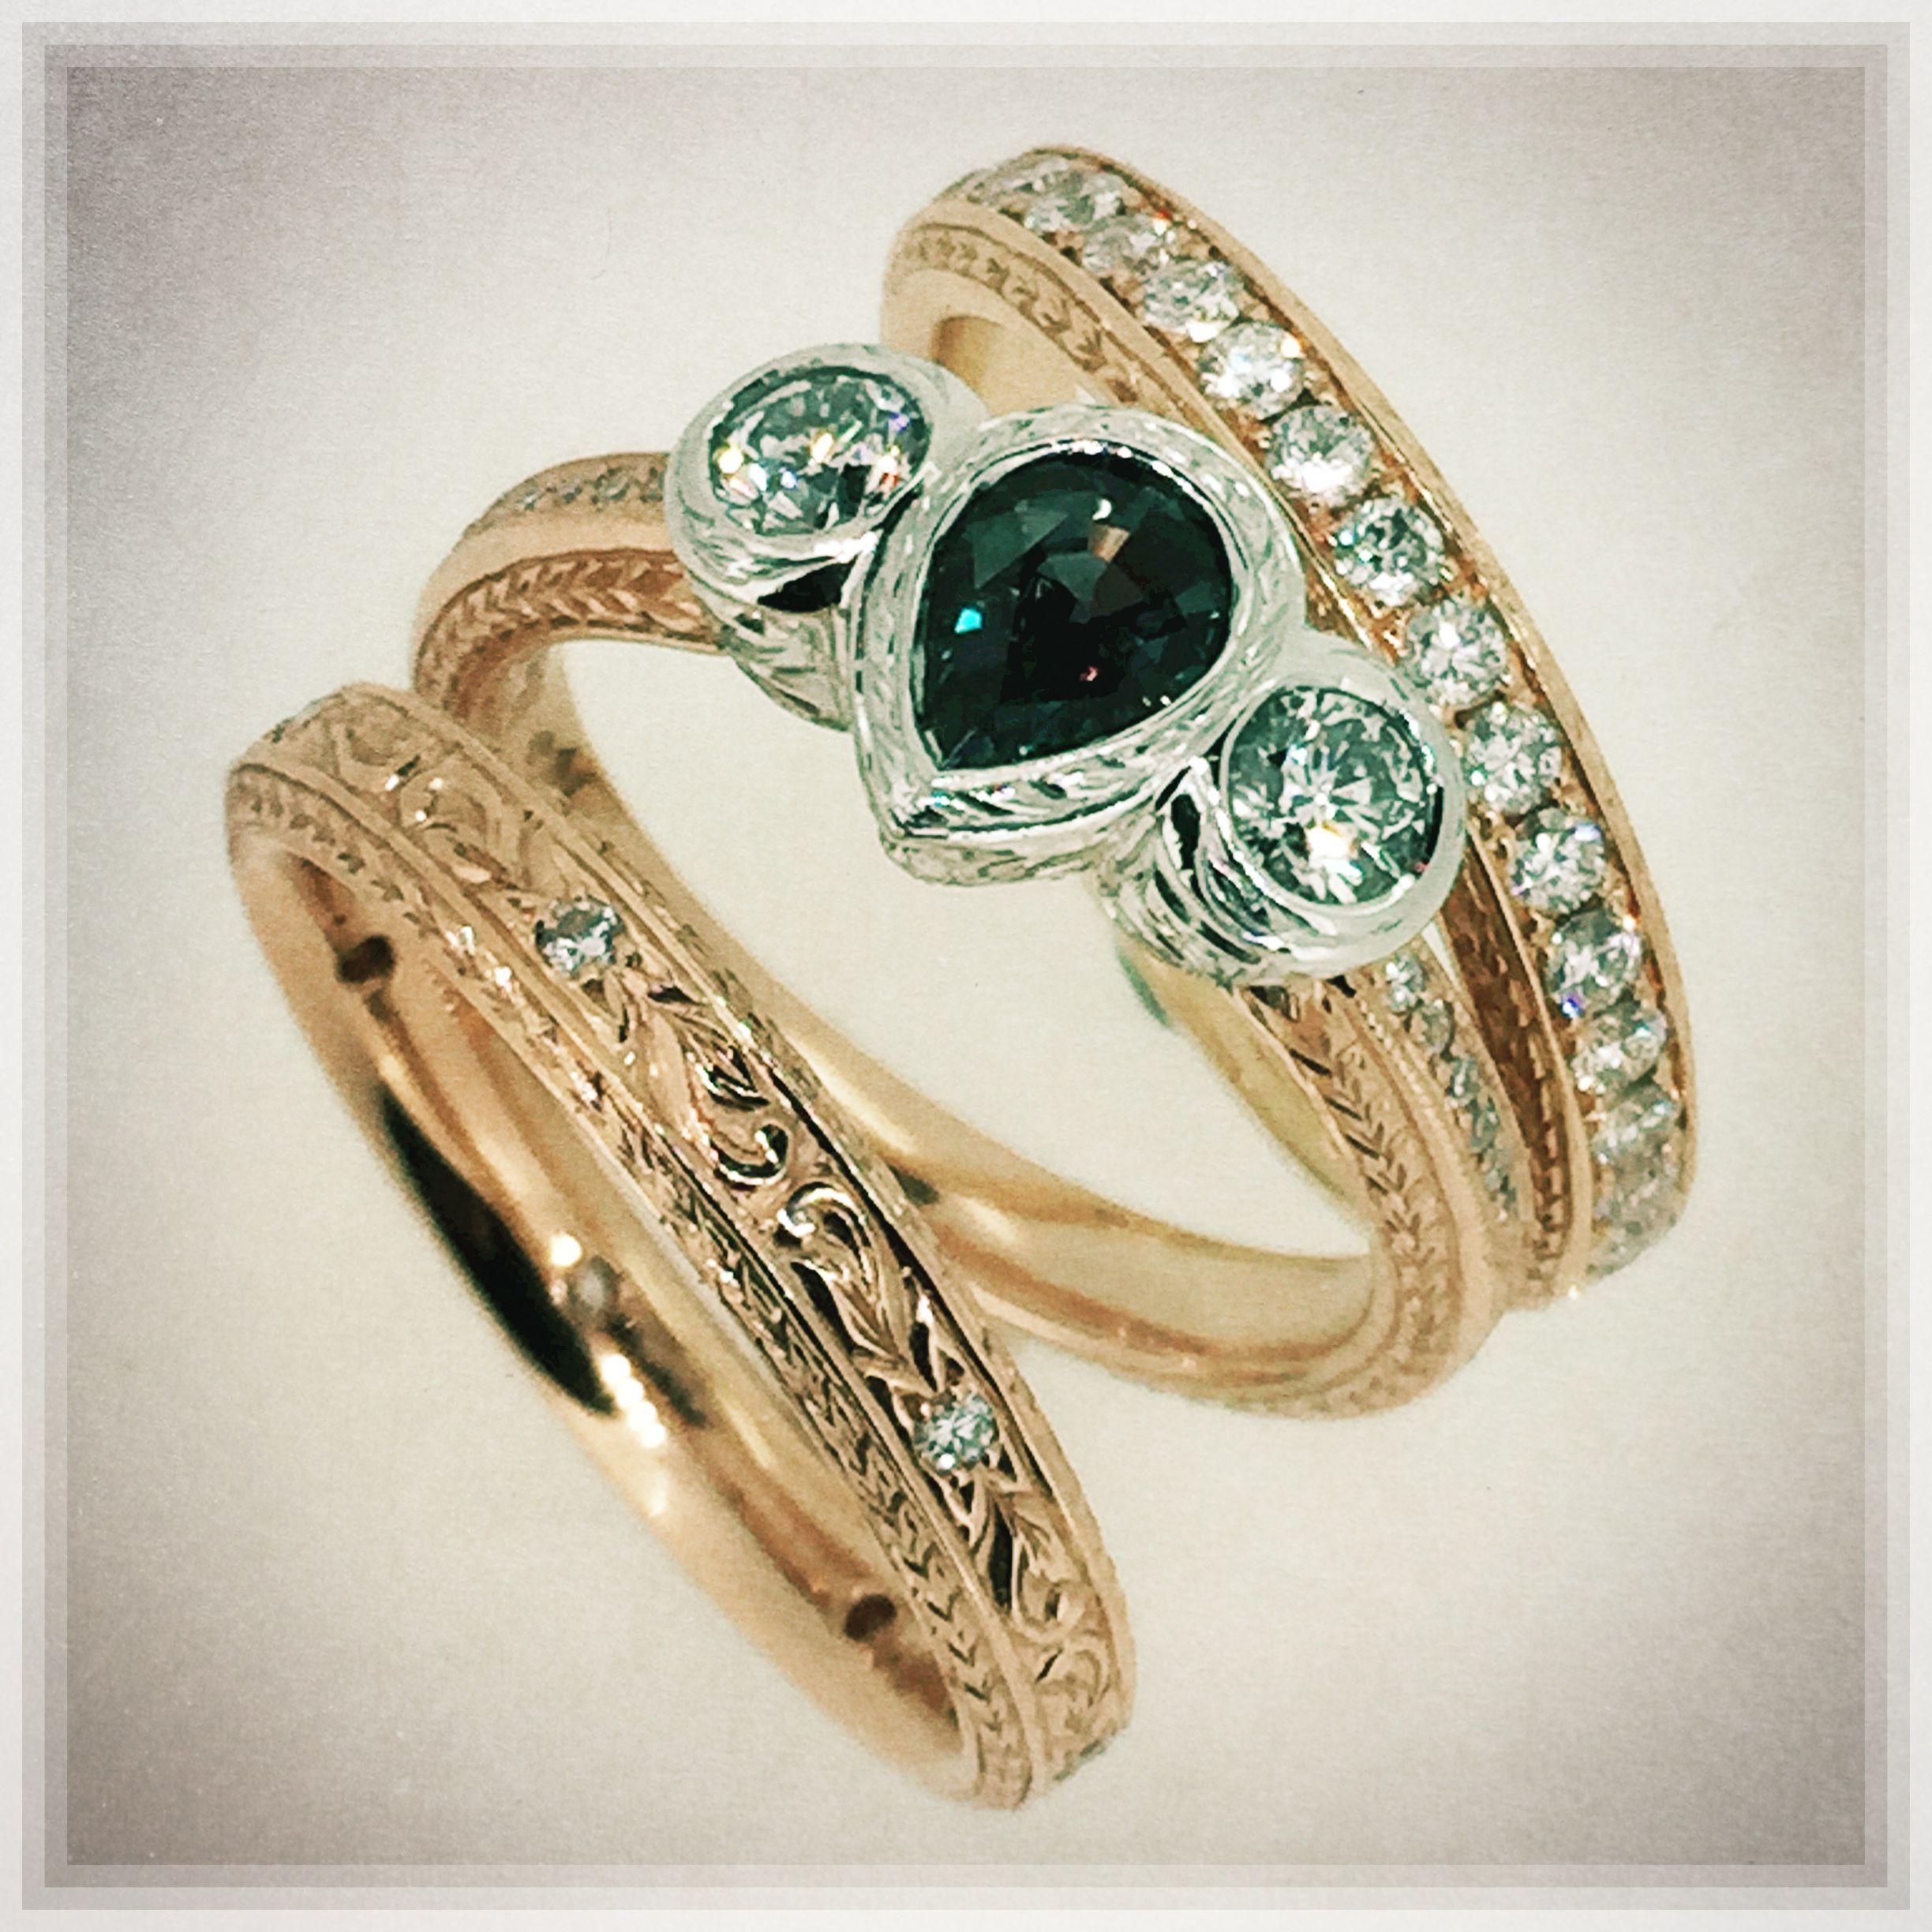 Alexandrite and Diamond Engagement Ring with Isabella Engraved Wedding Bands